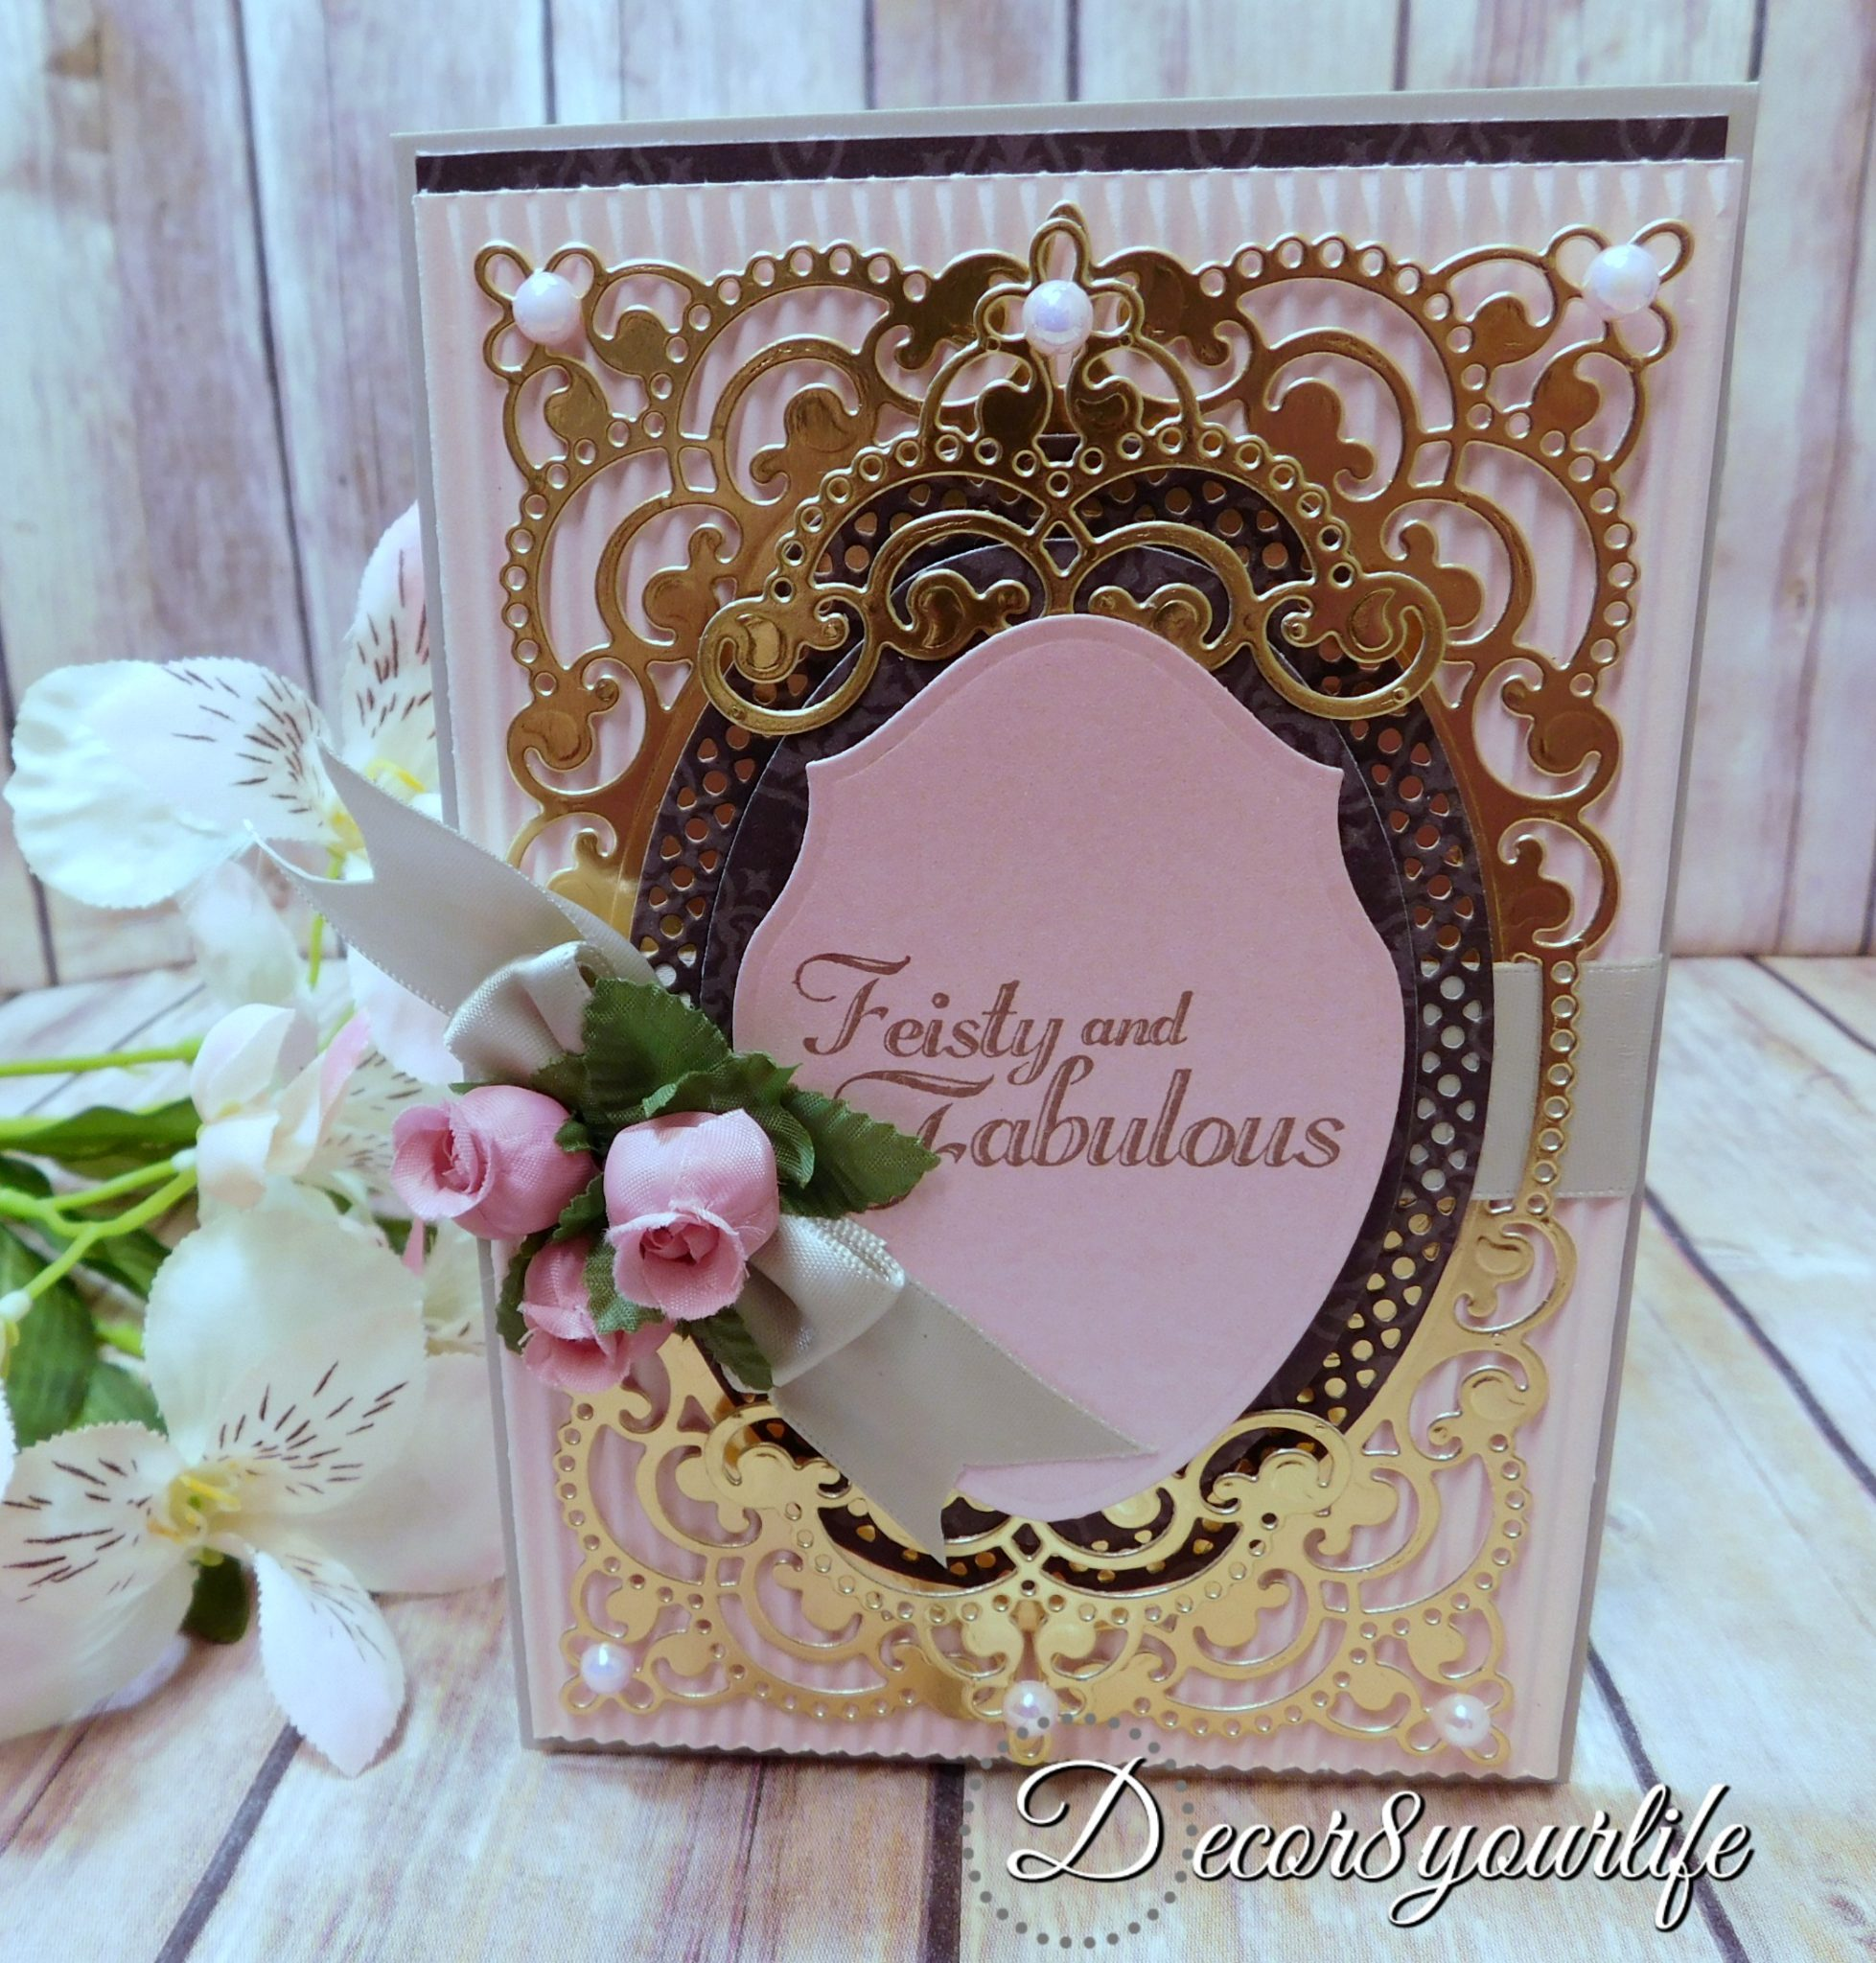 Elegant Card Ideas by Decor8yourlife